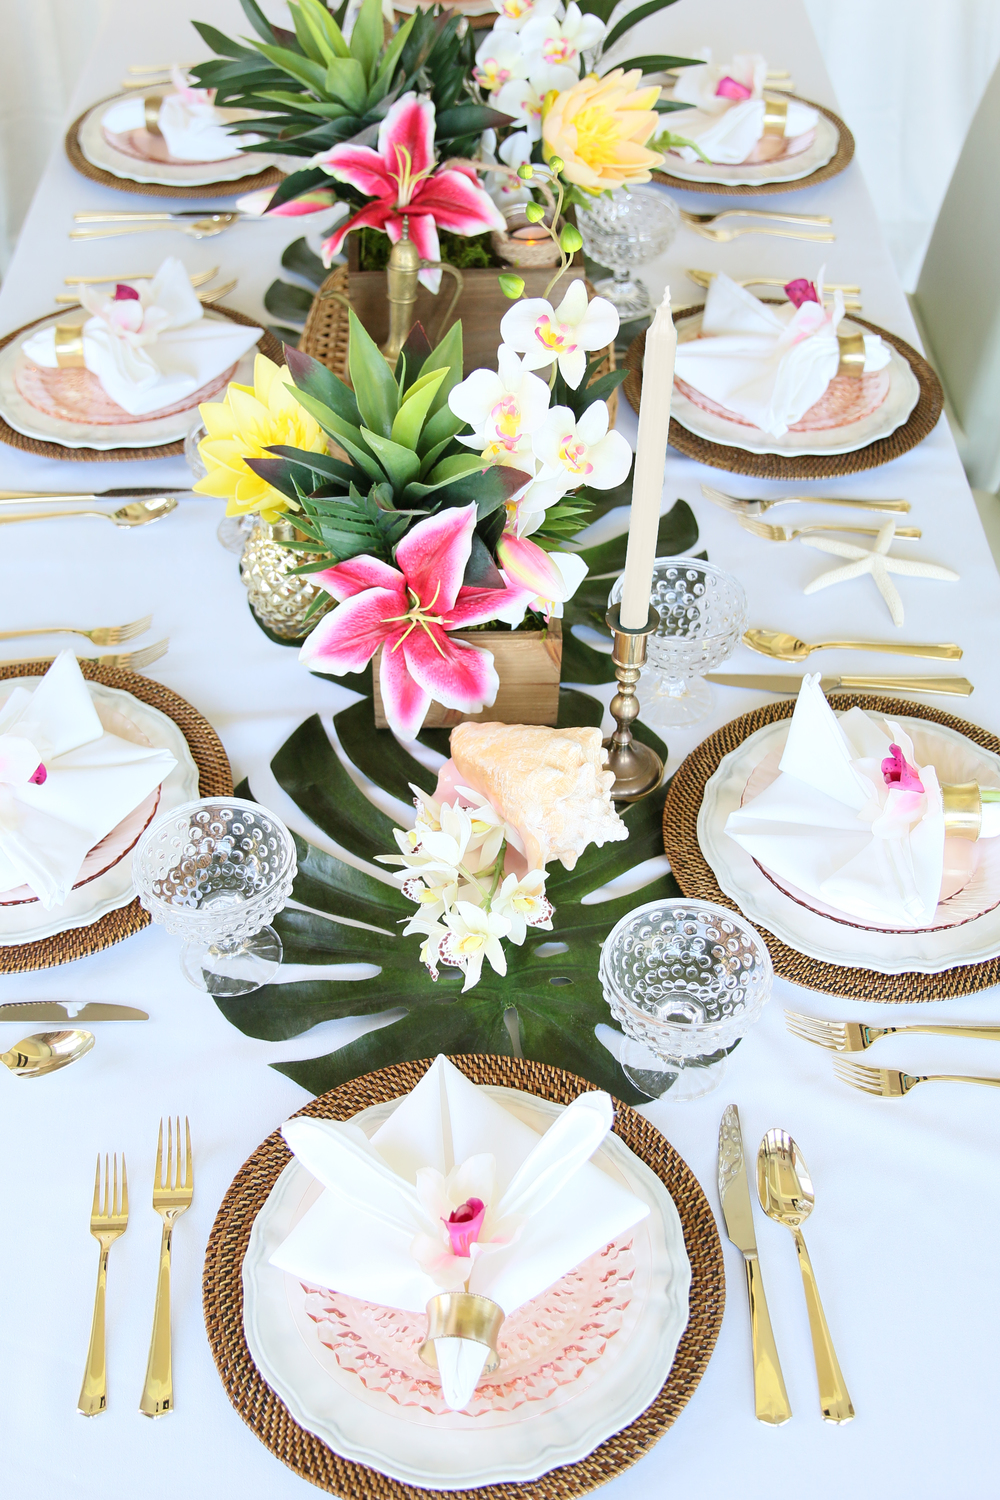 Copy of Palm leaves, tropical flowers, golden pineapples, wicker, seashells, & golden accents - Perfect for a baby shower, bridal shower, or birthday celebration! @inJOYtheParty